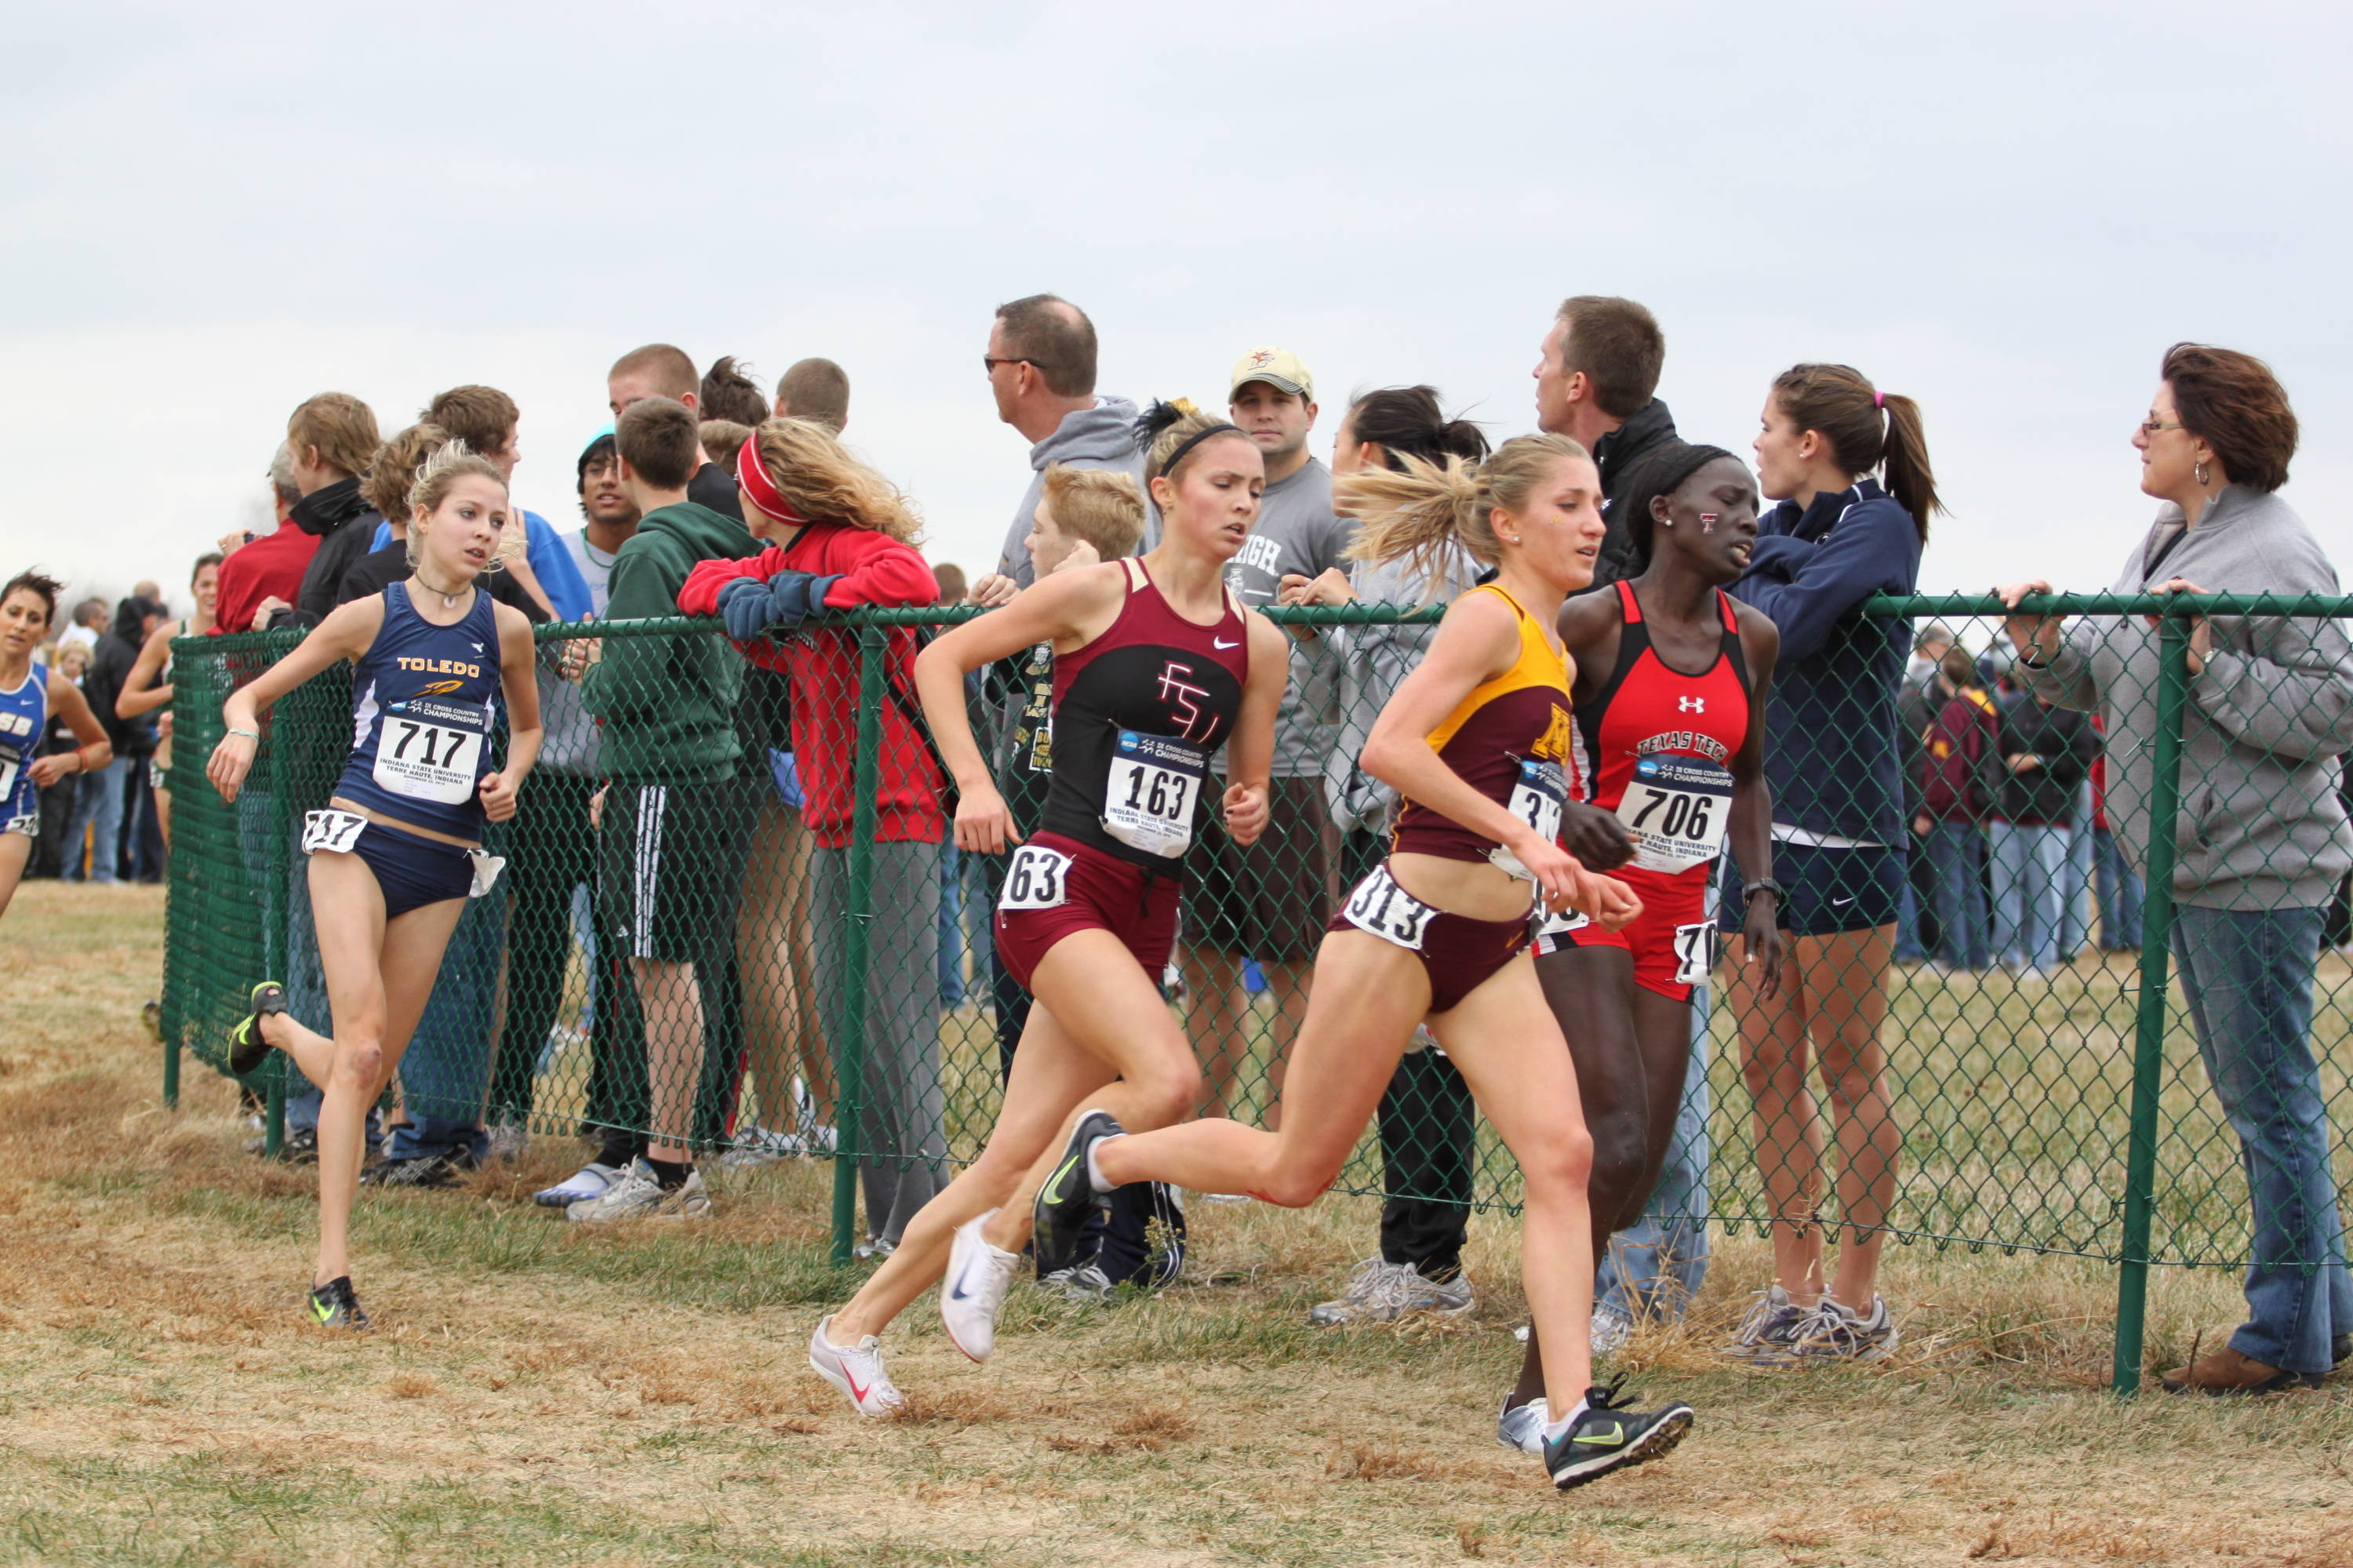 Jessica Parry, who earned All-American honors for the FSU women, prepares to pass another runner.